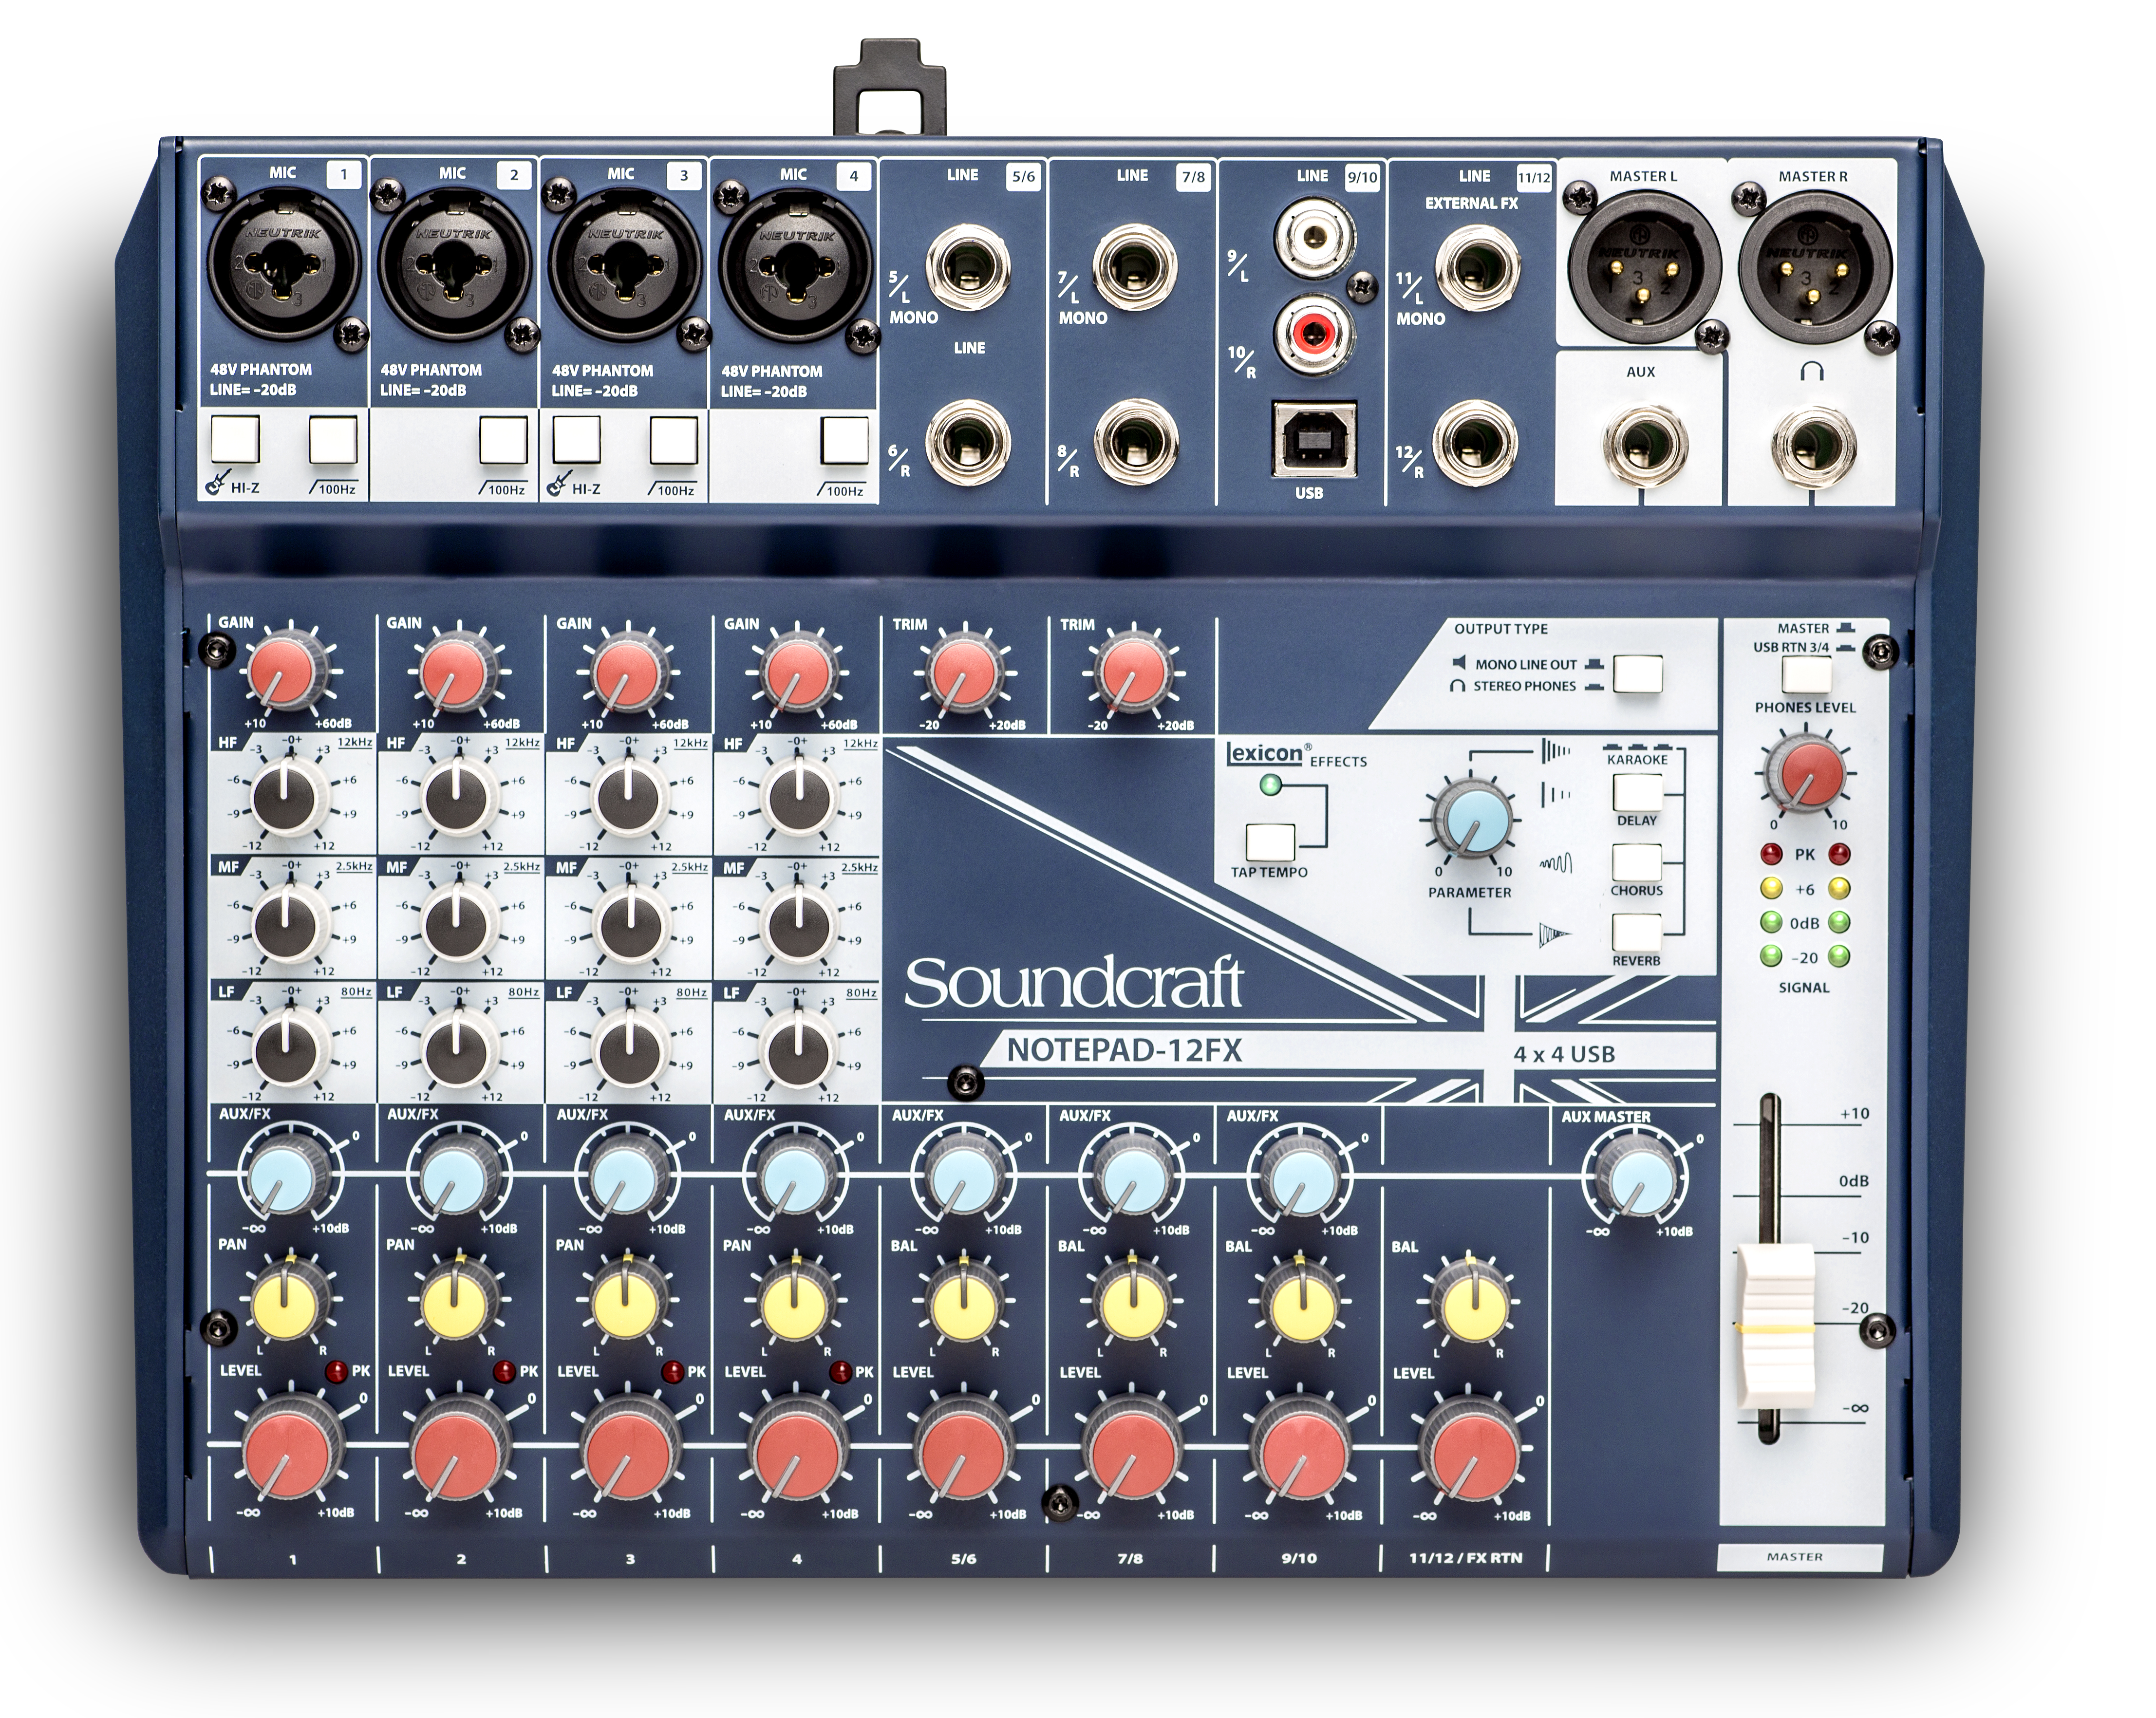 Notepad 12fx Soundcraft Professional Audio Mixers Block Diagram Of Craft Electronics Np 01 Tiny Square